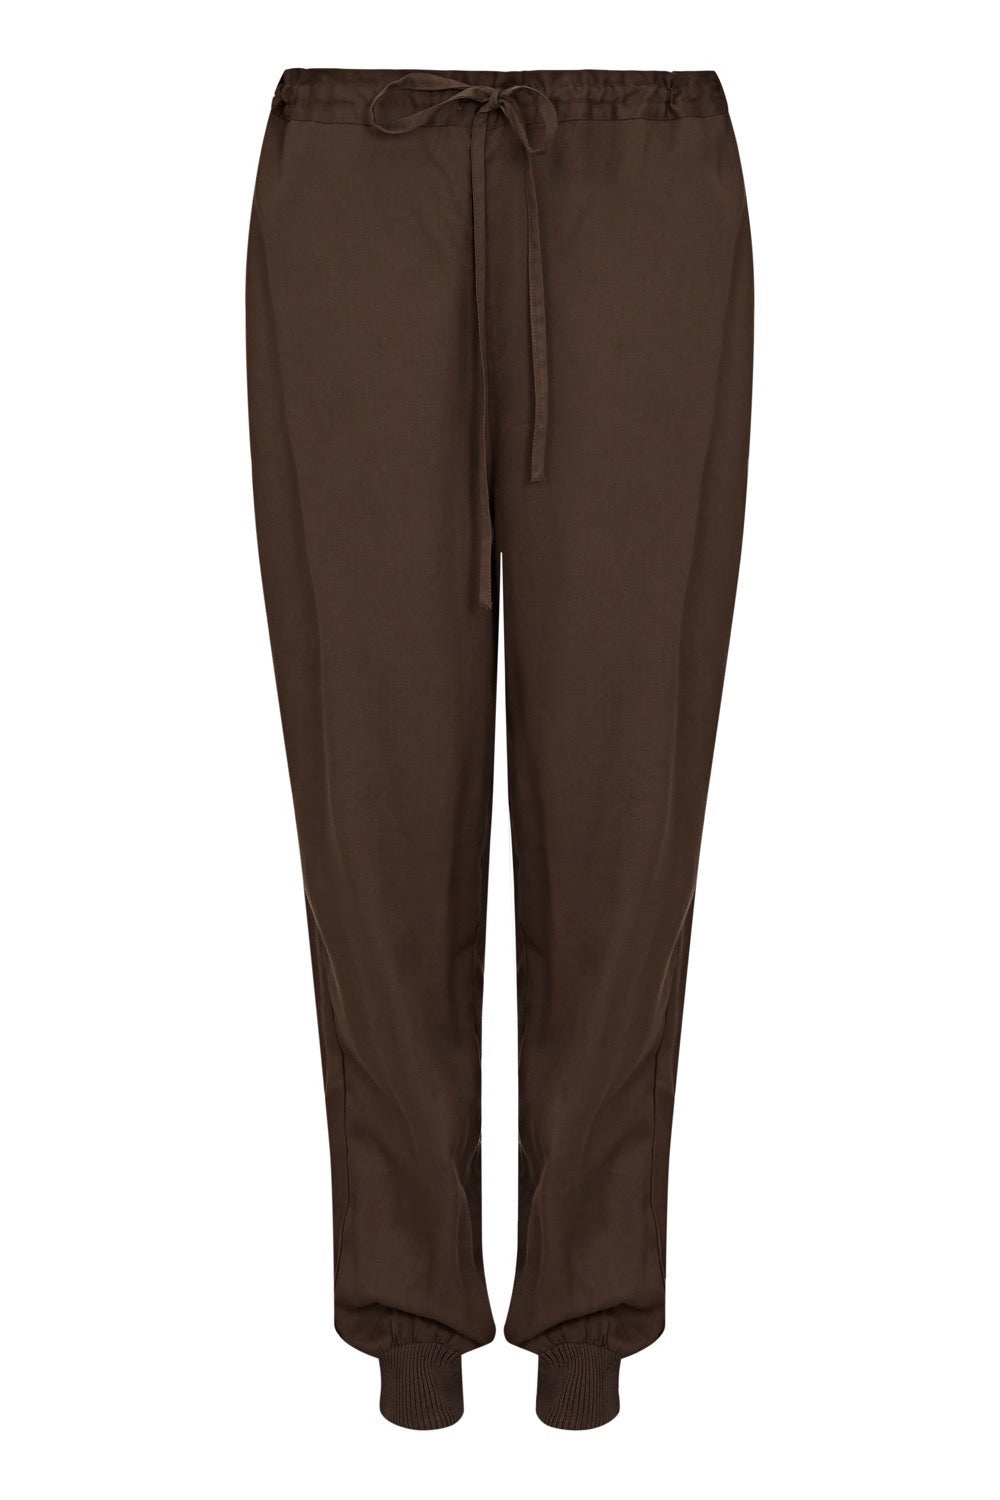 Jessy Trousers - Olive